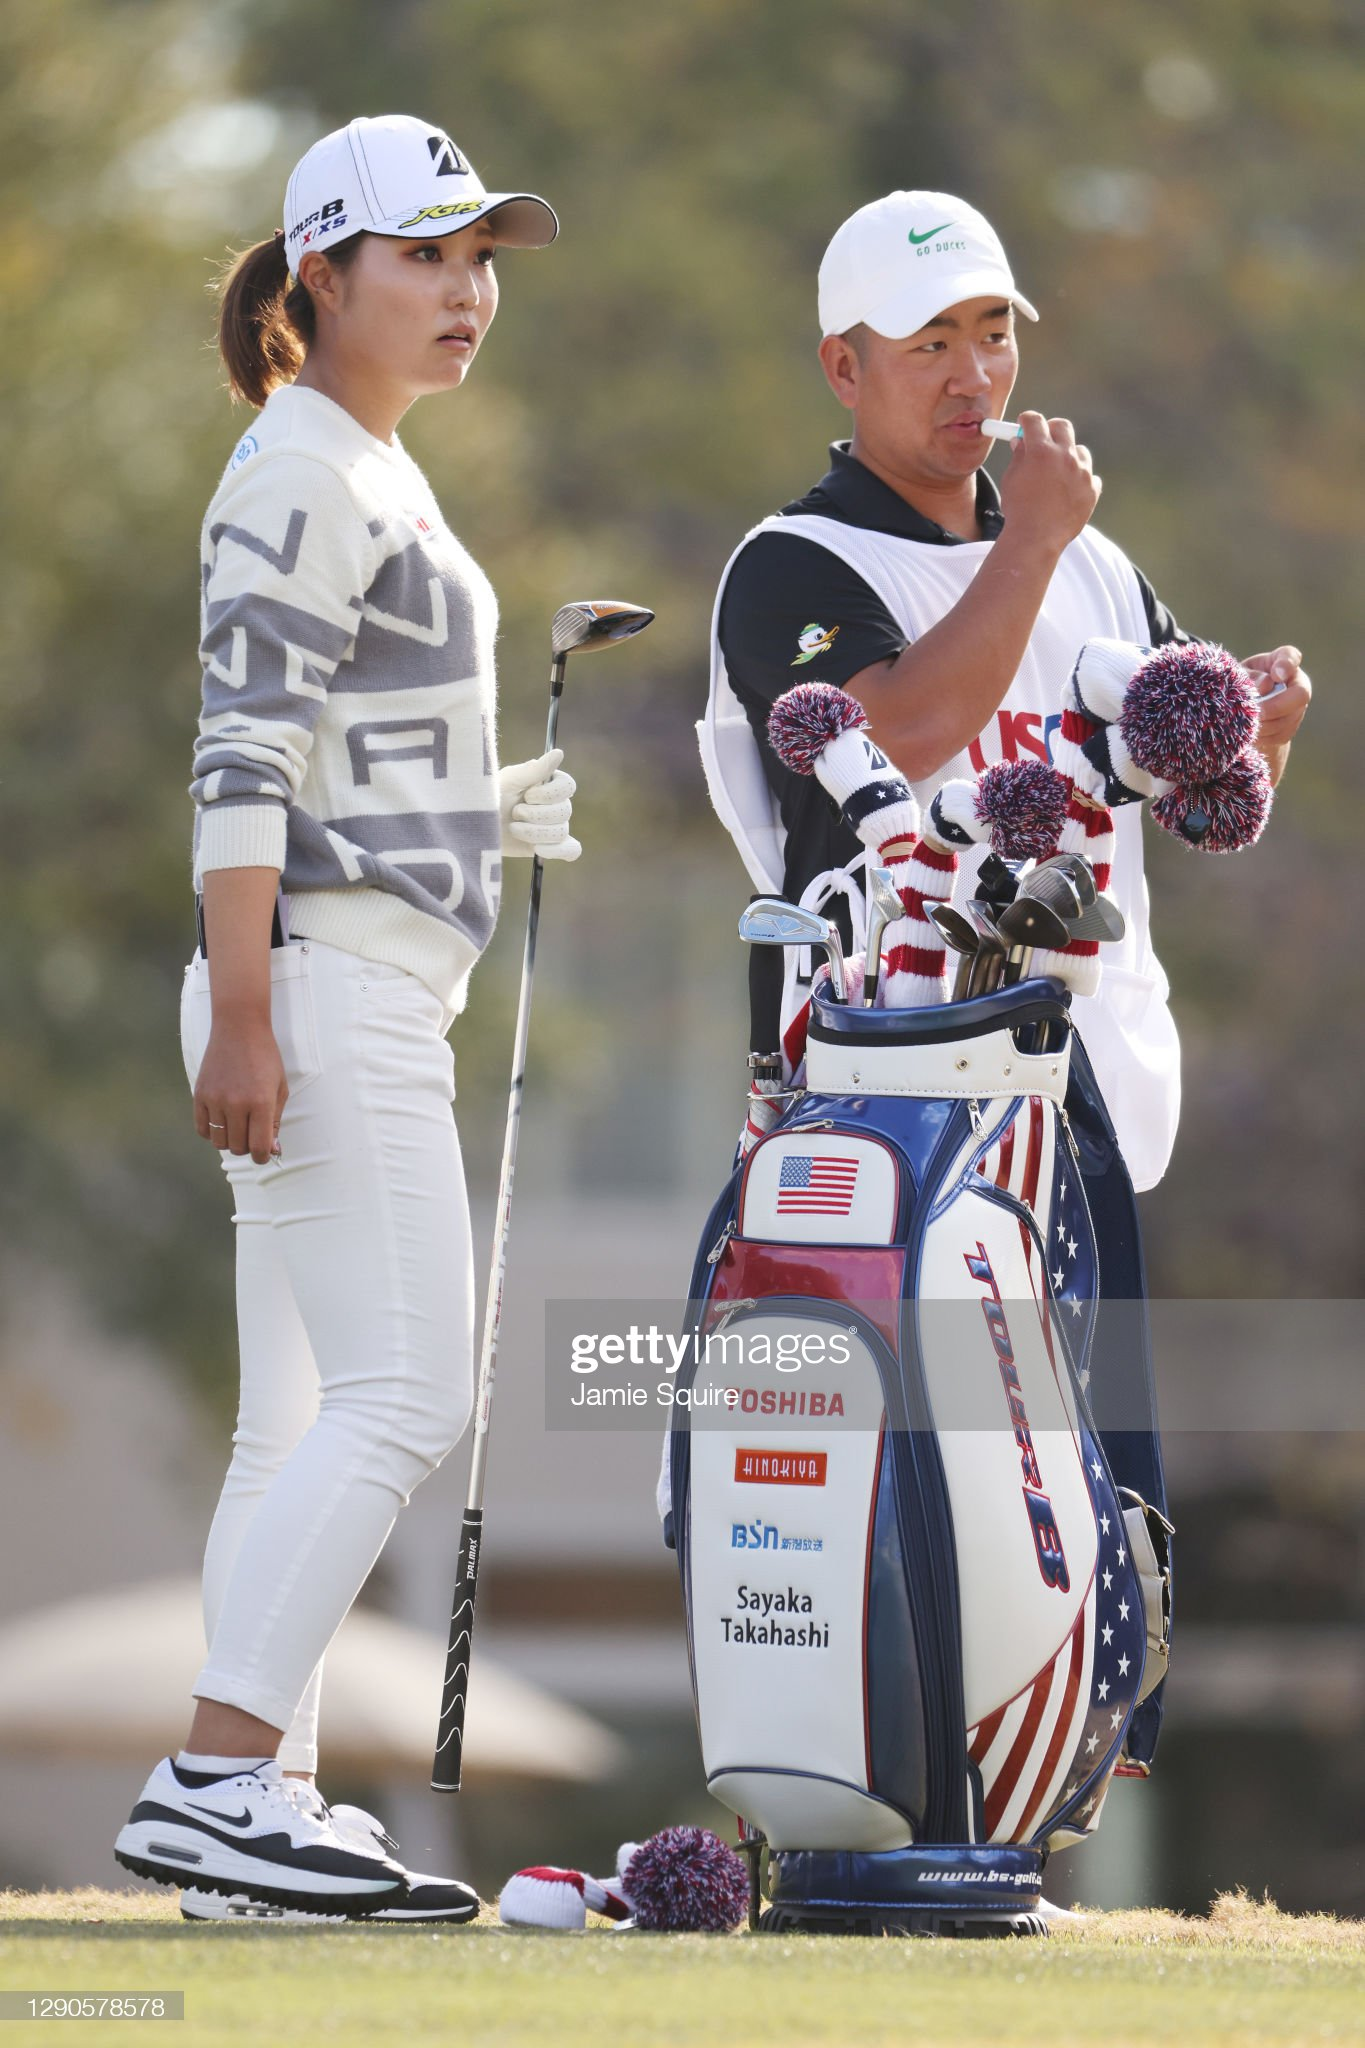 https://media.gettyimages.com/photos/sayaka-takahashi-of-japan-talks-with-her-caddie-on-the-12th-hole-the-picture-id1290578578?s=2048x2048